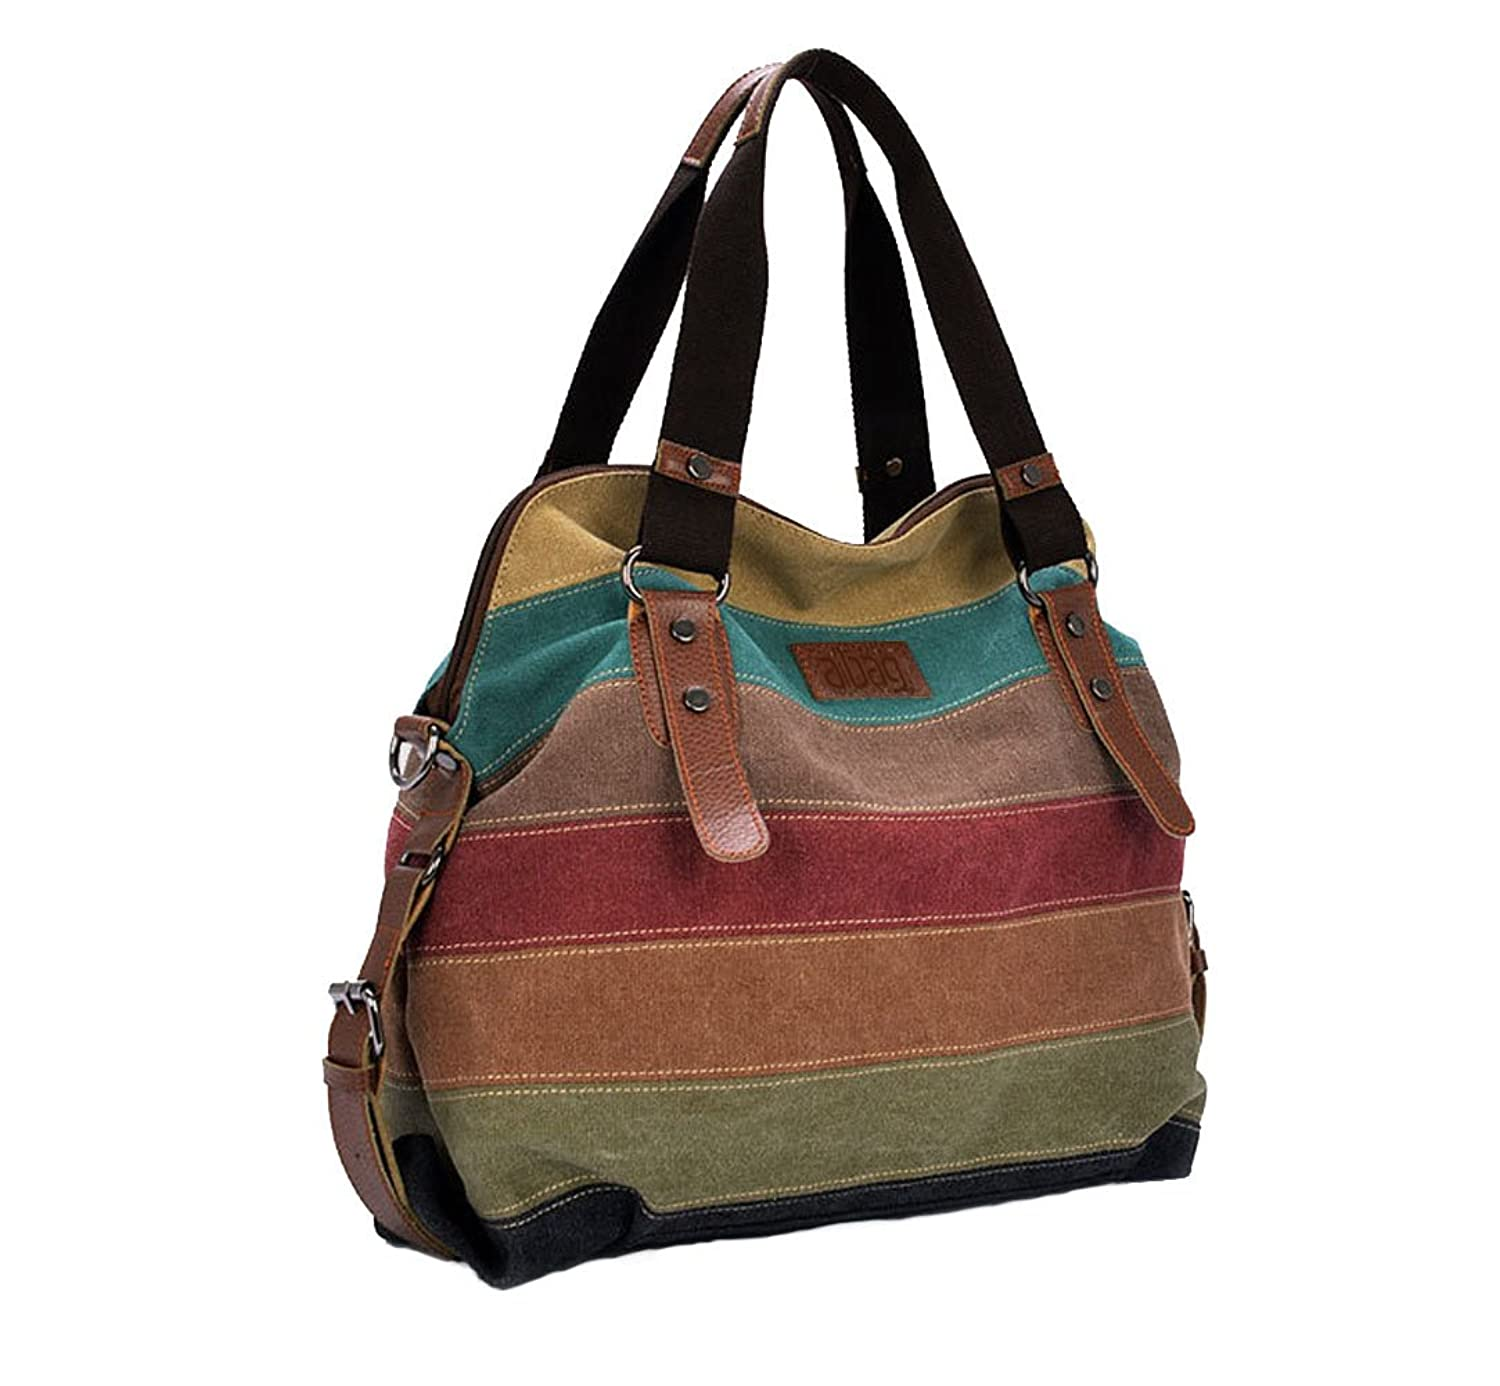 Amazon.com: Aibag Multi-Color Daily Purse Women's Canvas Top ...